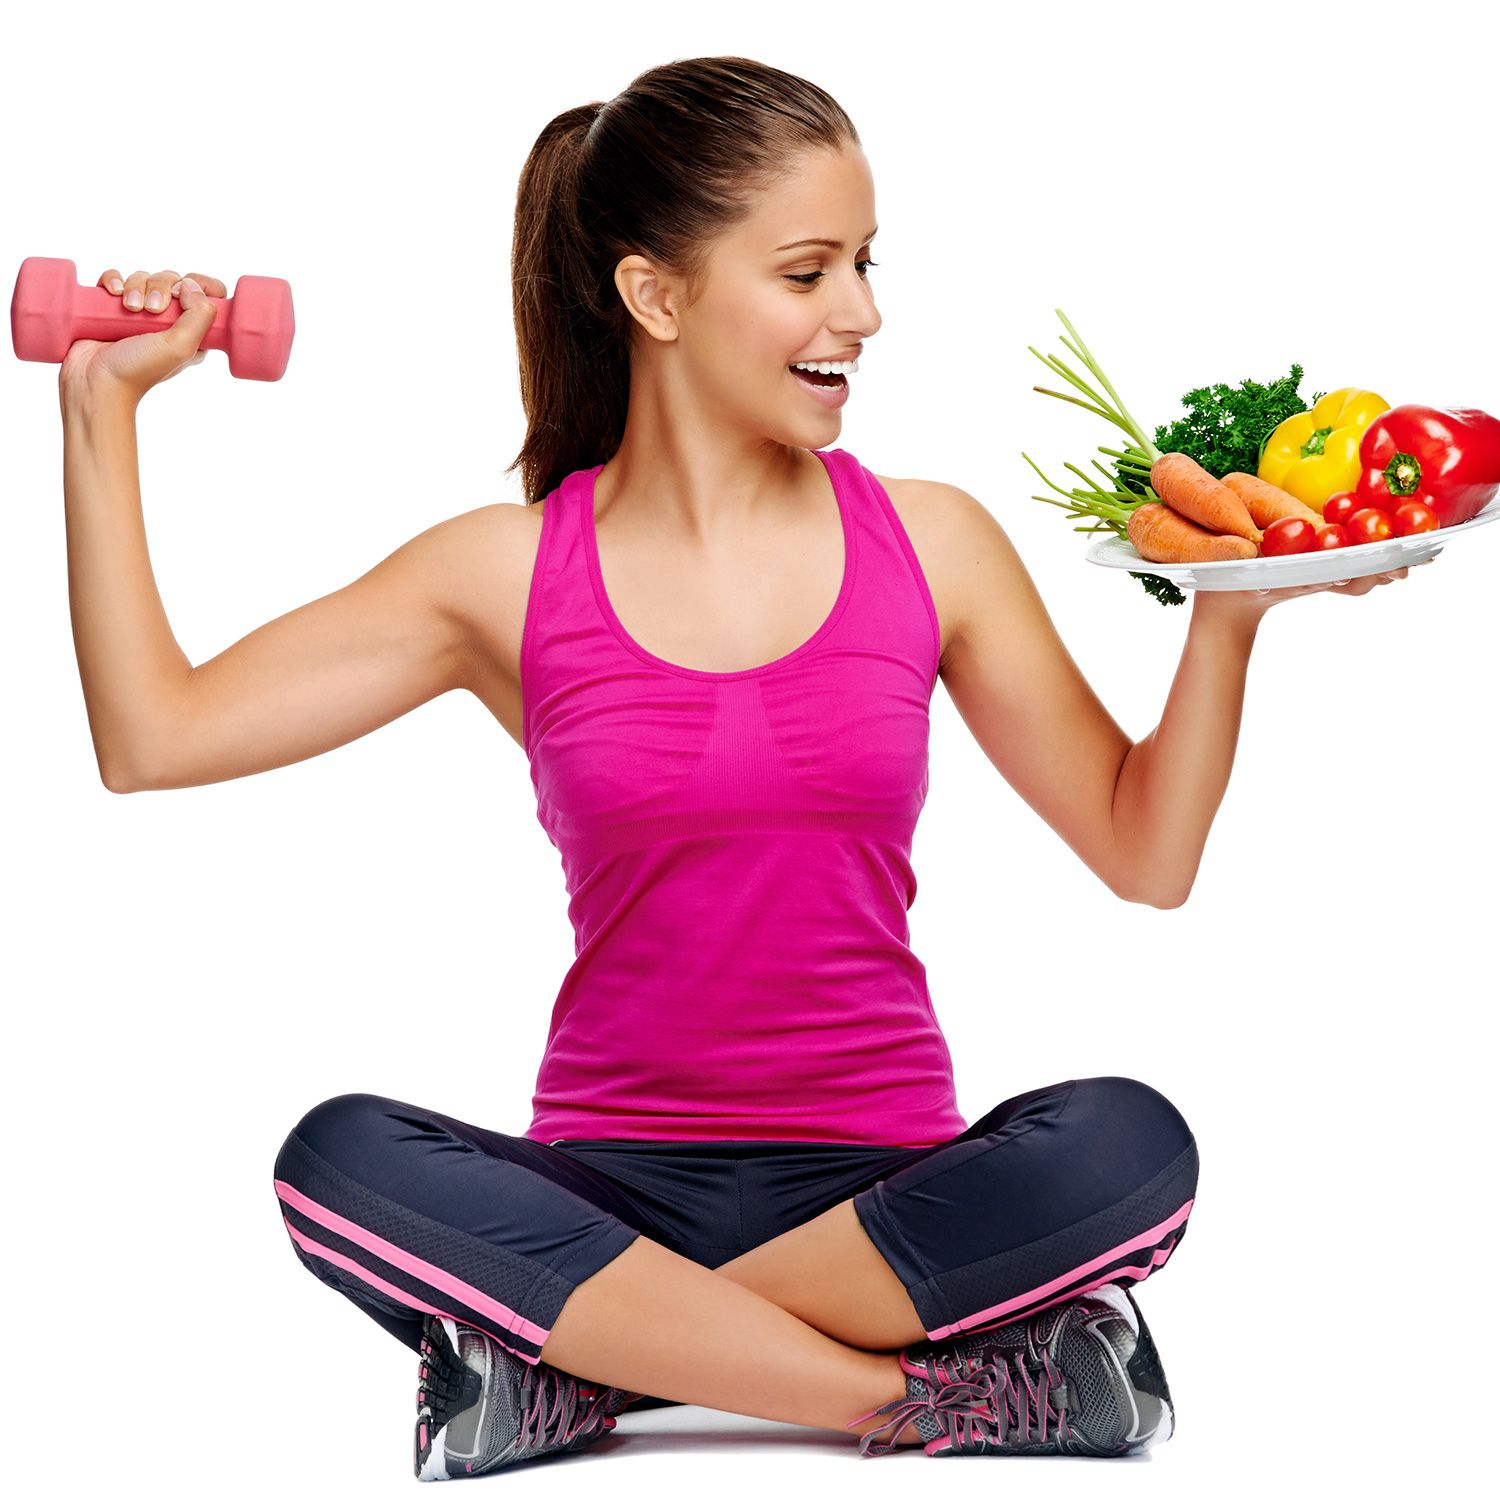 Eating and health - Fitness And Healthy Eating Pics Google Search